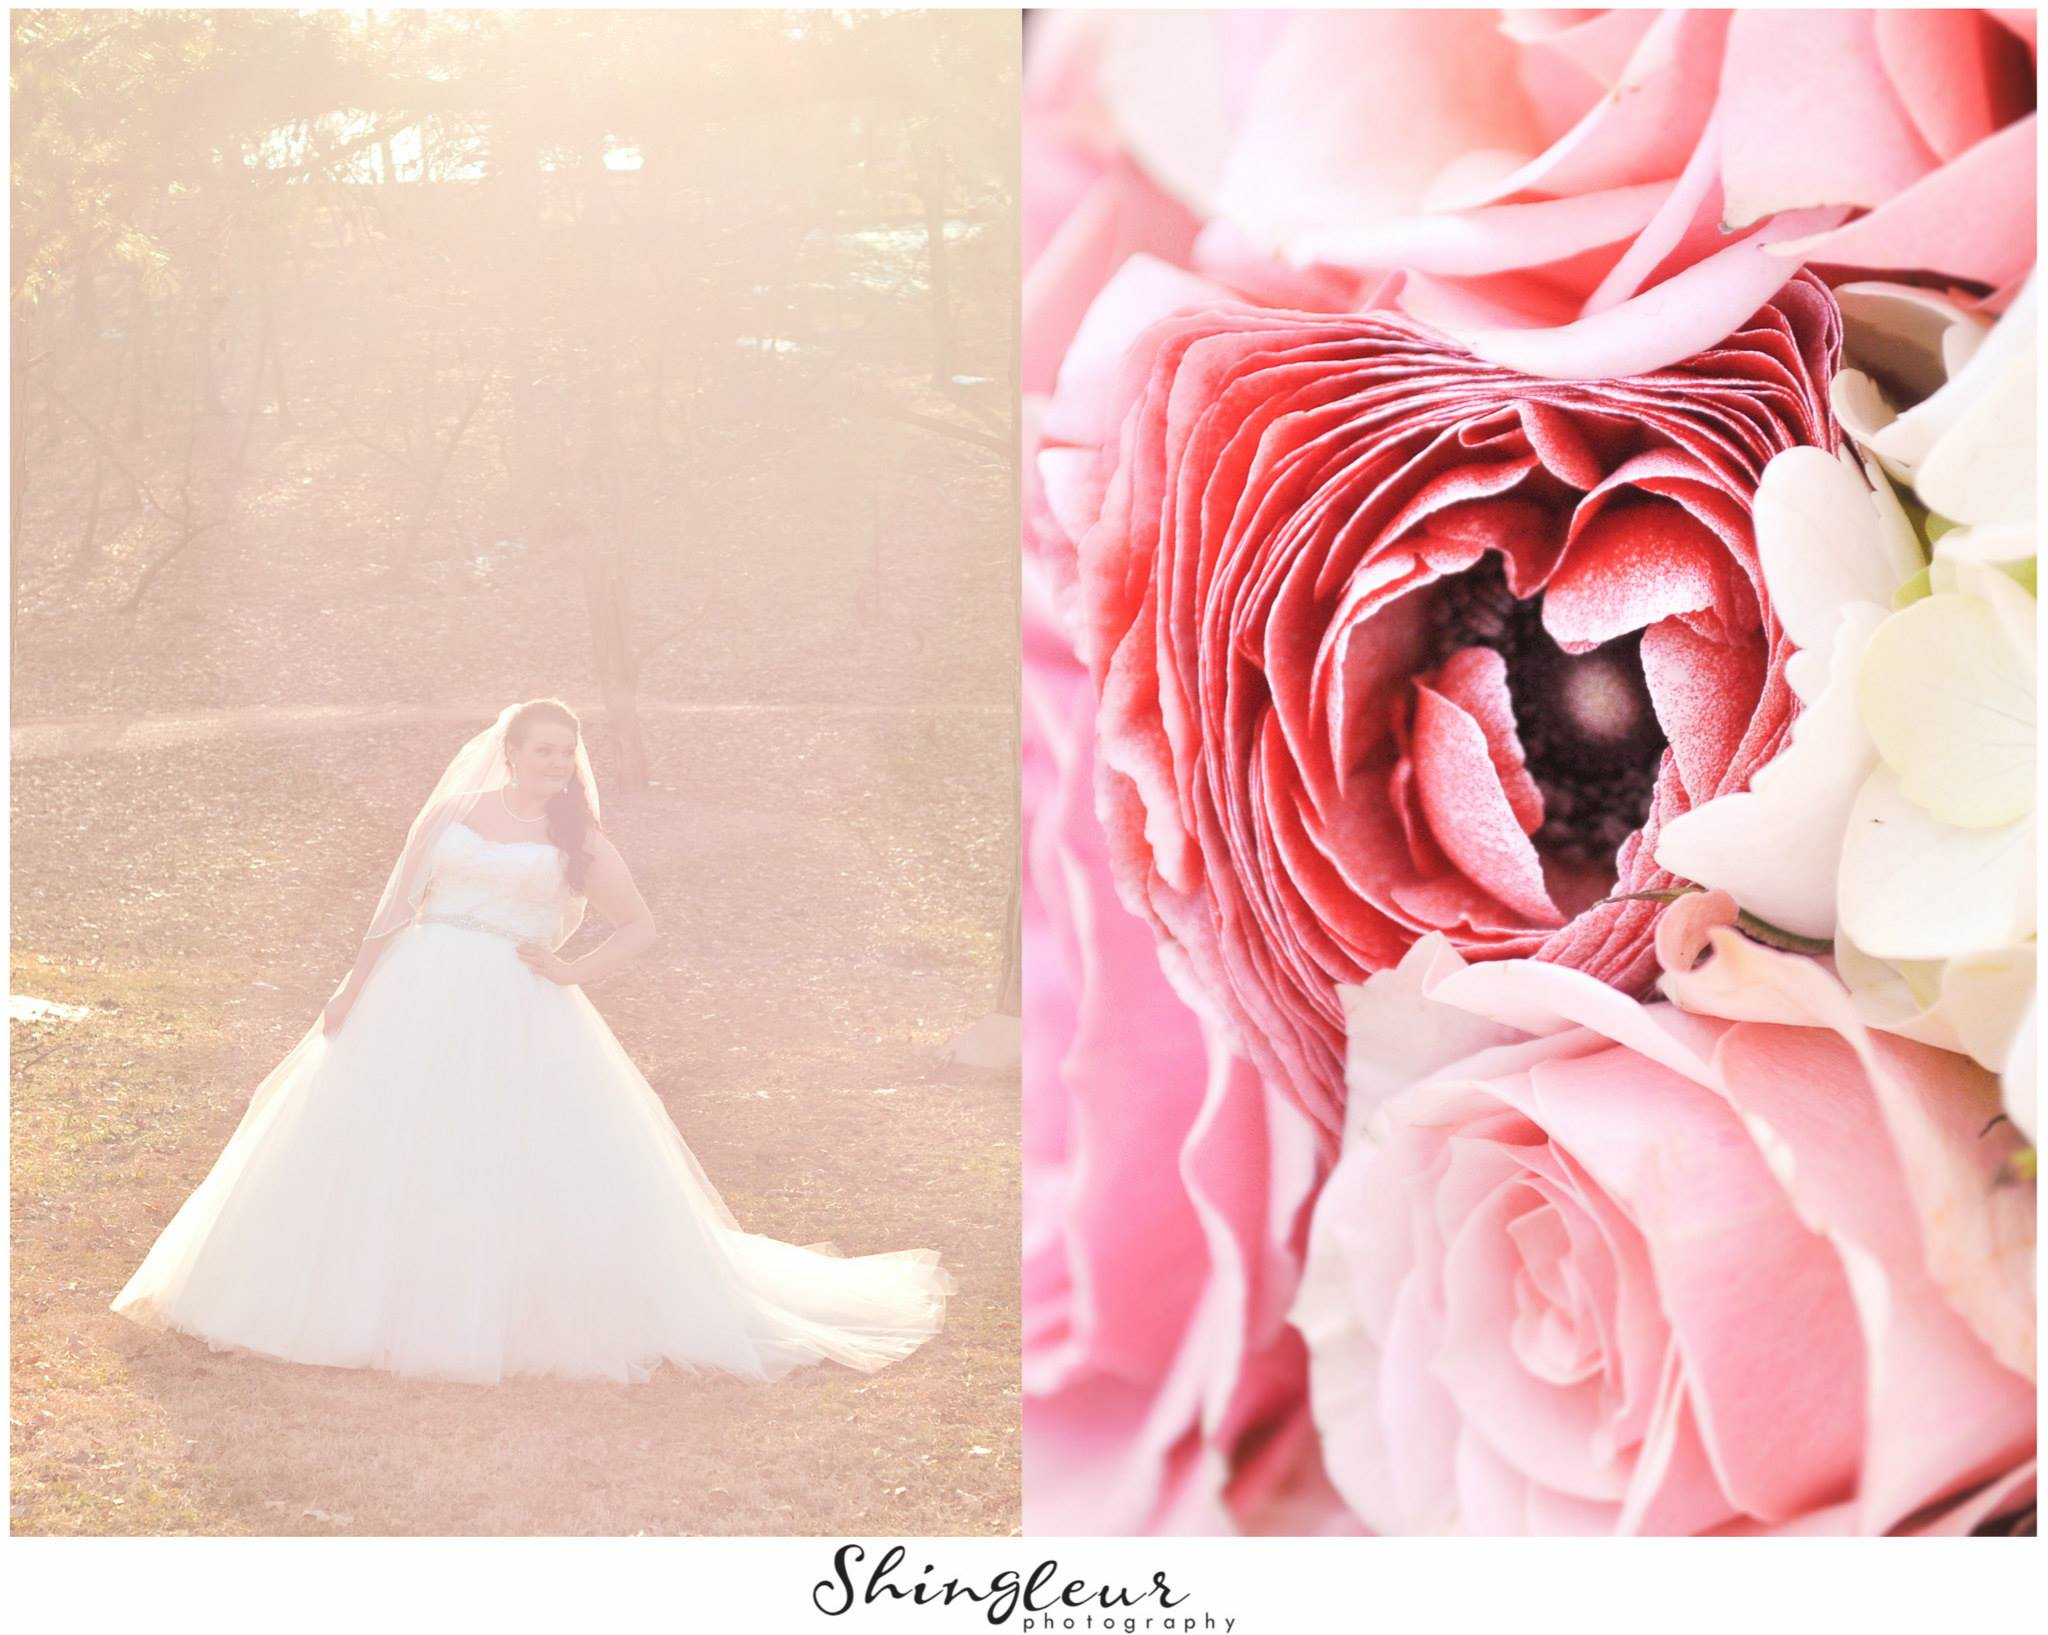 Shingleur Photography . Another couple of dreamy shots from  Brittany 's bridals.